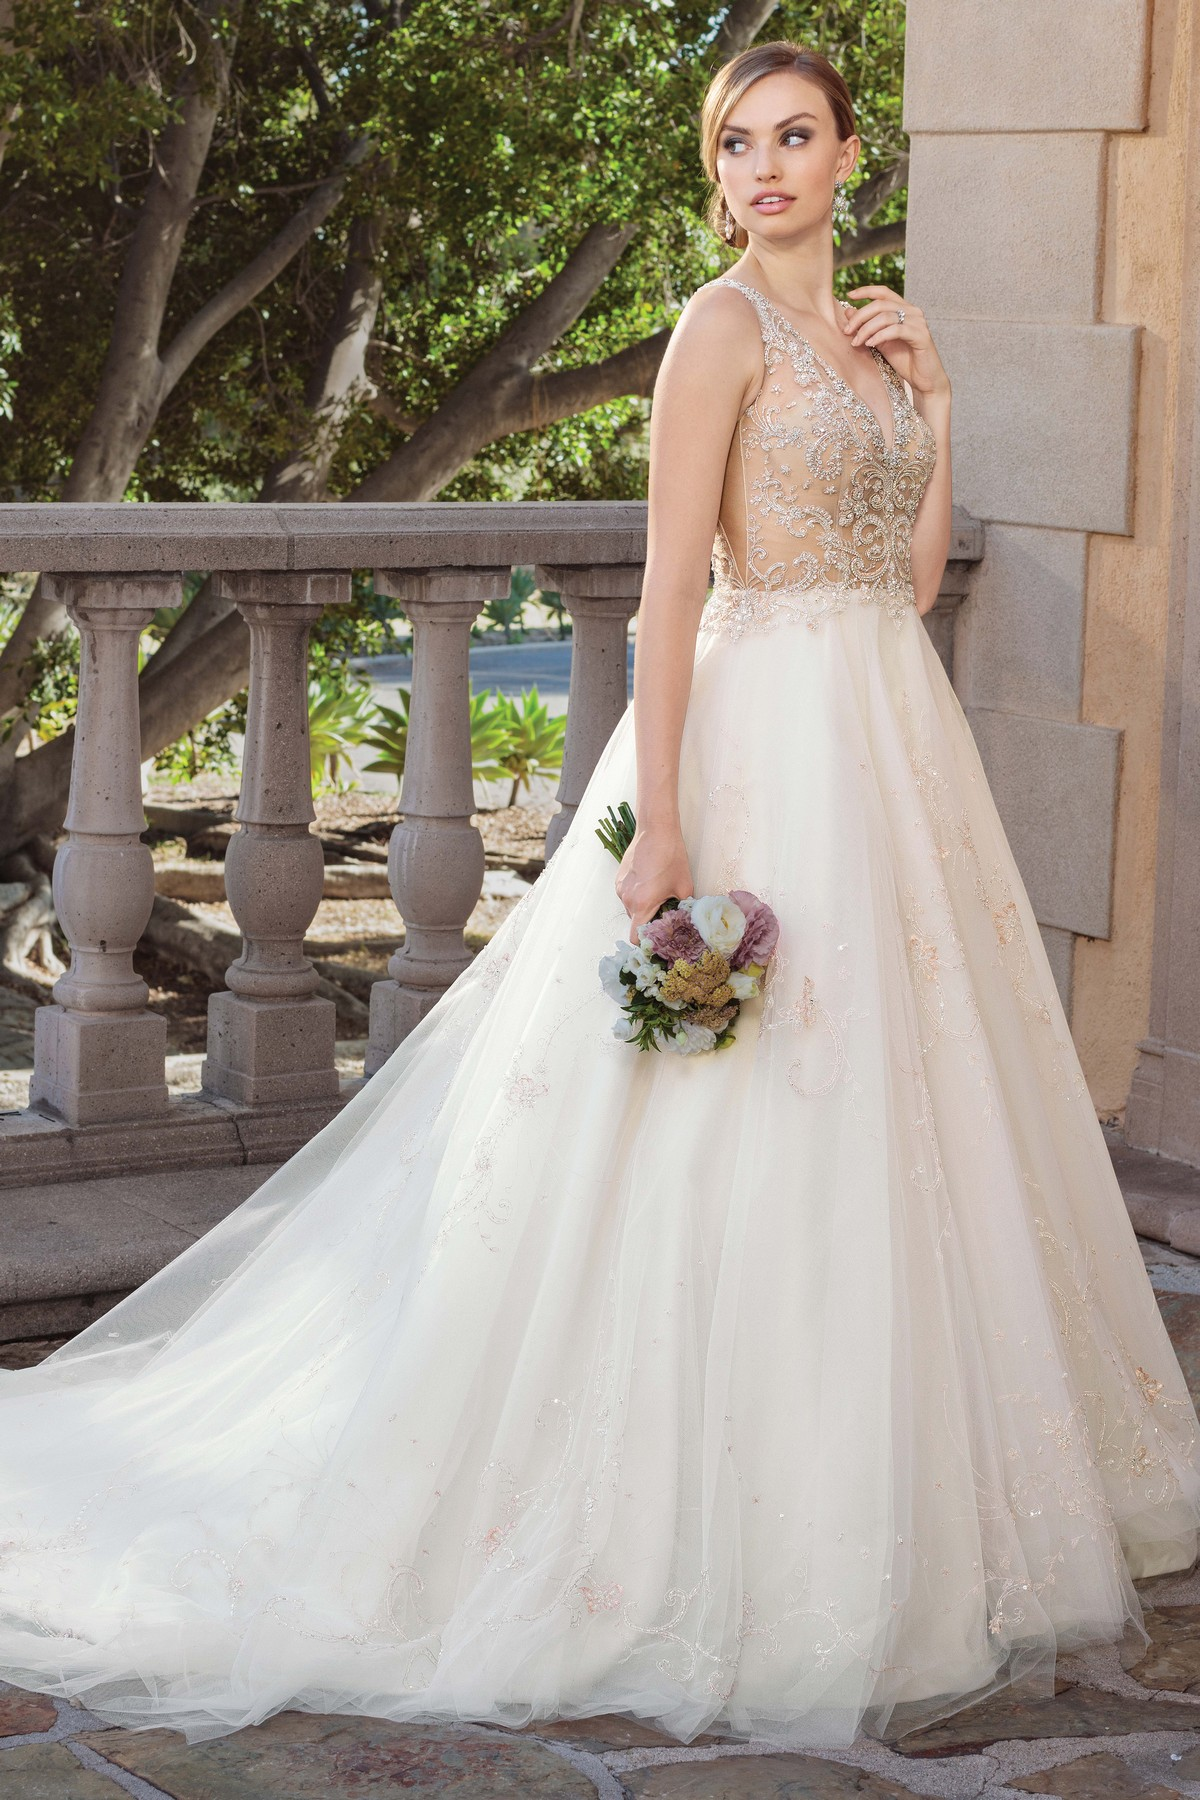 d63493570f Style 2316 Sable by Casablanca Bridal - Find Your Dream Dress